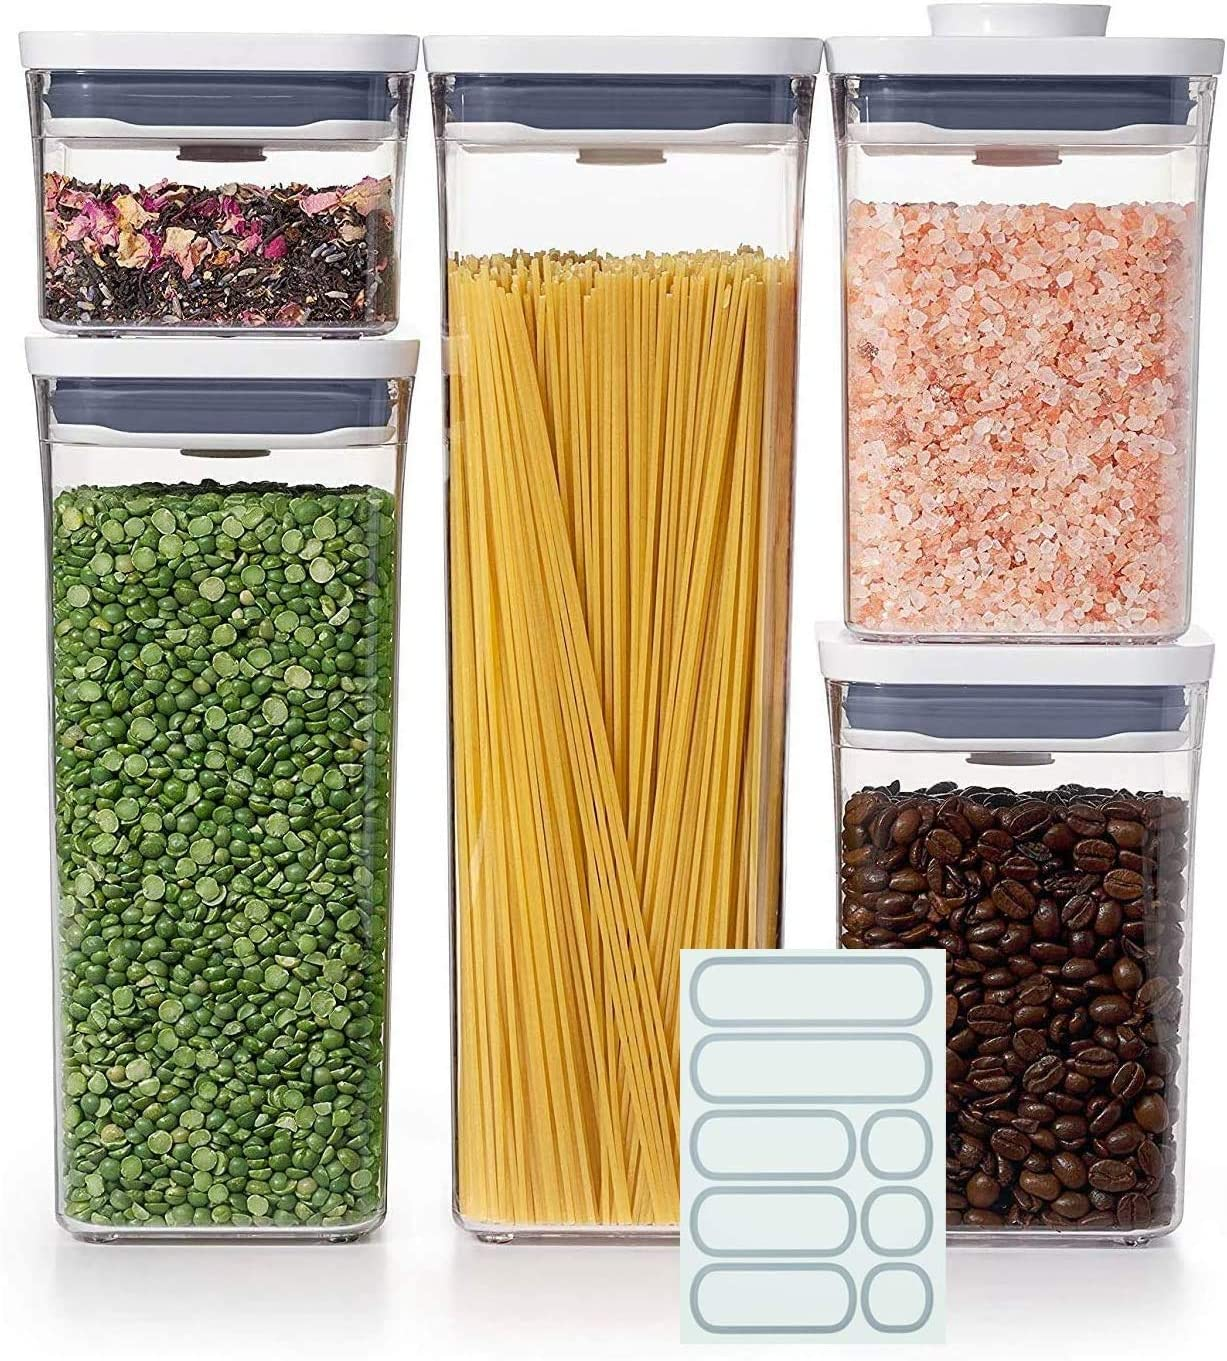 OXO Good Grips 5-Piece POP Container Set with 5 Labels